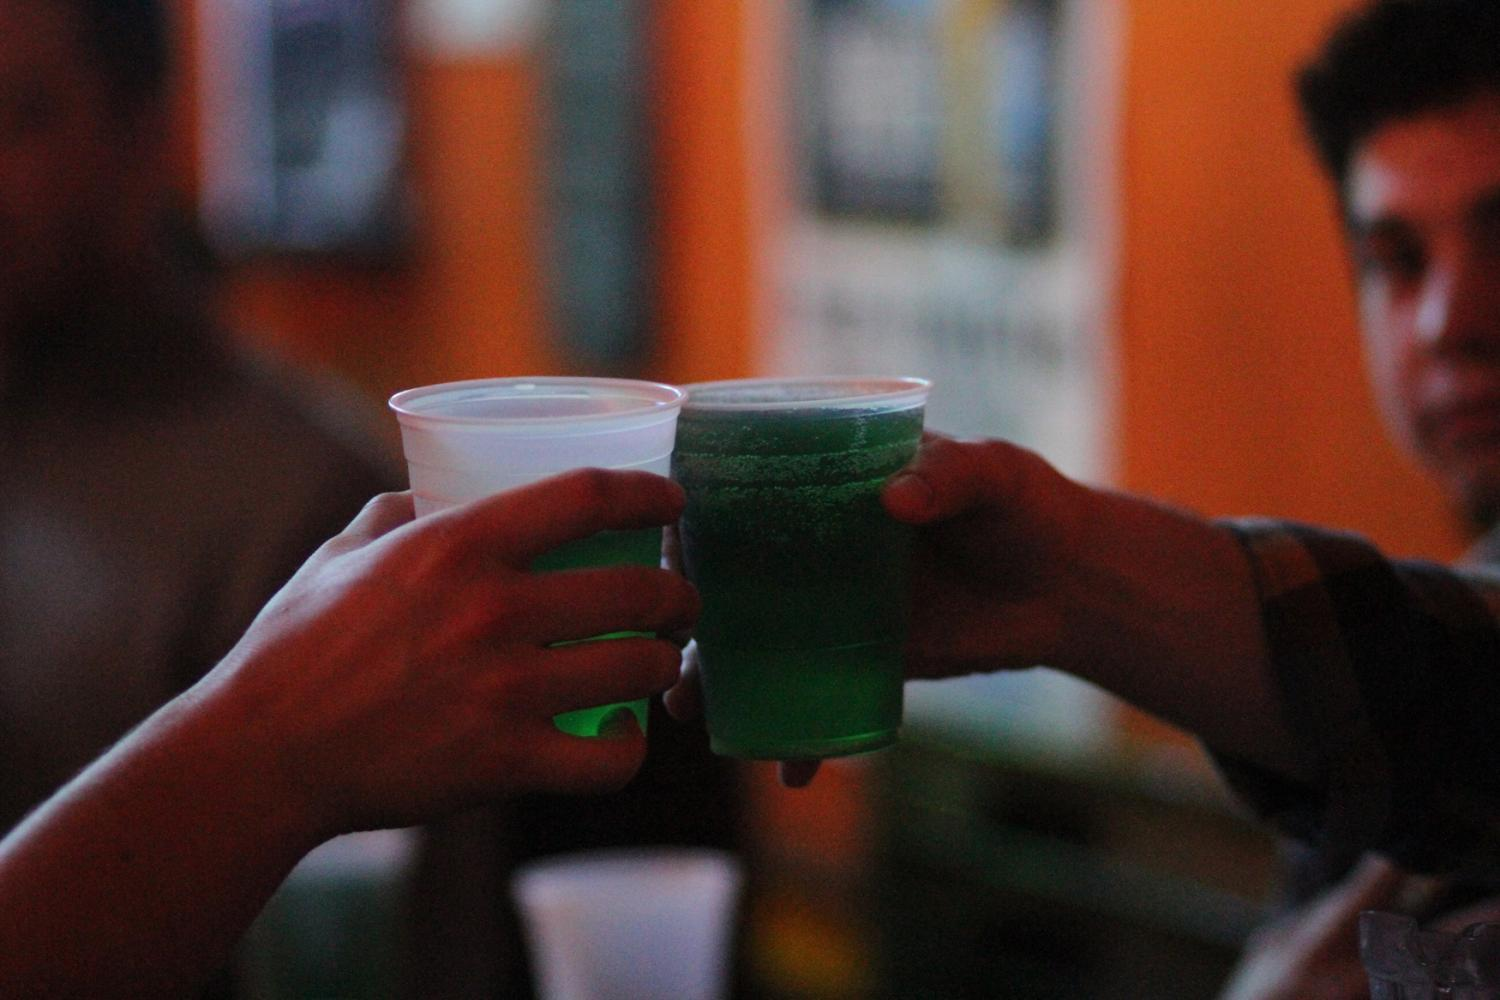 $1 pitchers of green beer, leftover from St. Patrick's Day was being served at Monterey's Pub & Grub